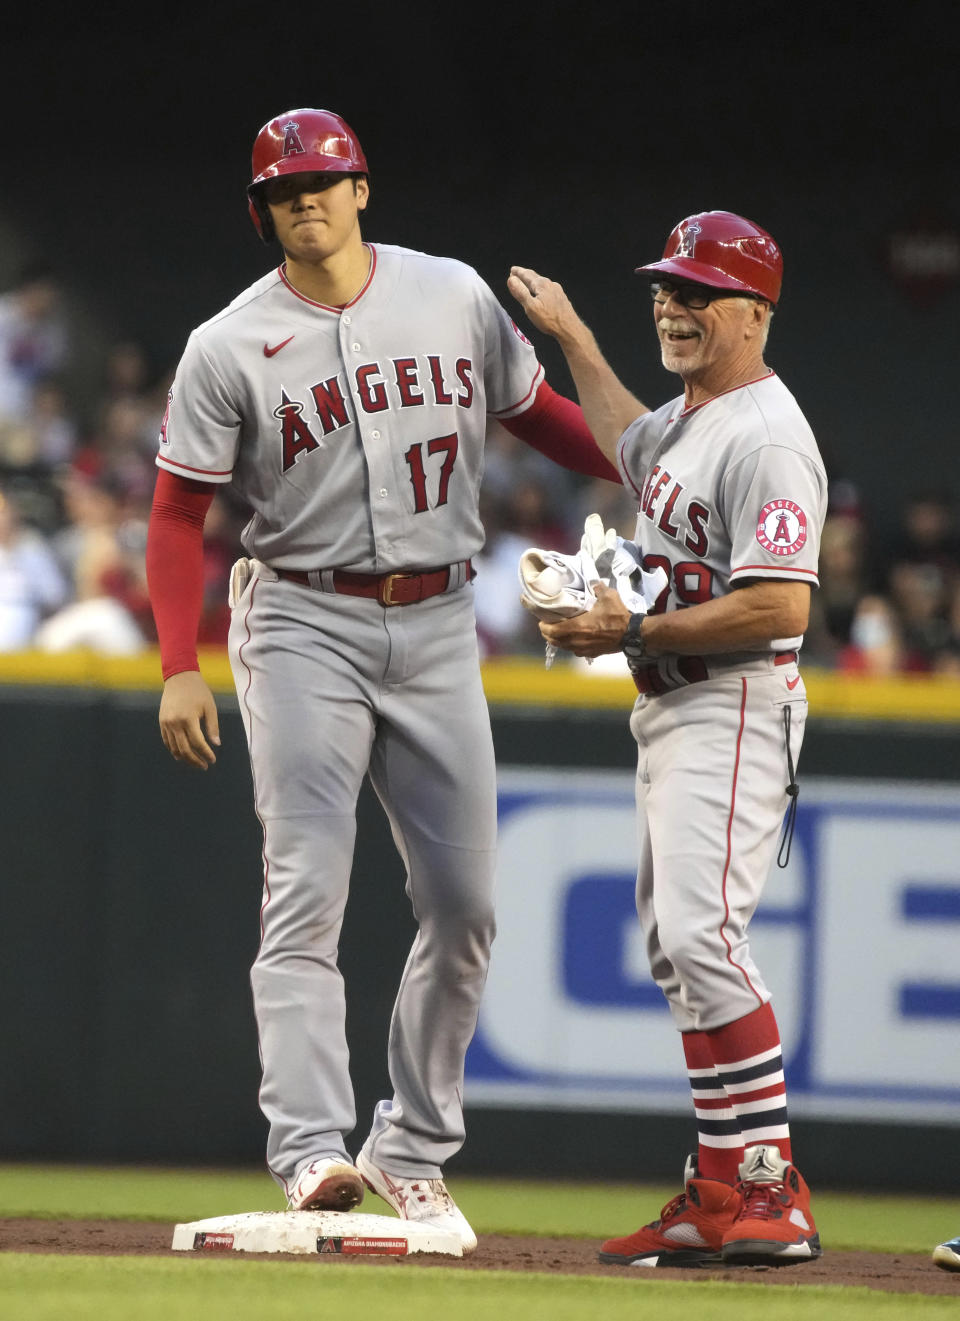 Los Angeles Angels' Shohei Ohtani (17) laughs with first base coach Bruce Hines after hitting an RBI-double against the Arizona Diamondbacks in the third inning during a baseball game, Friday, June 11, 2021, in Phoenix. (AP Photo/Rick Scuteri)